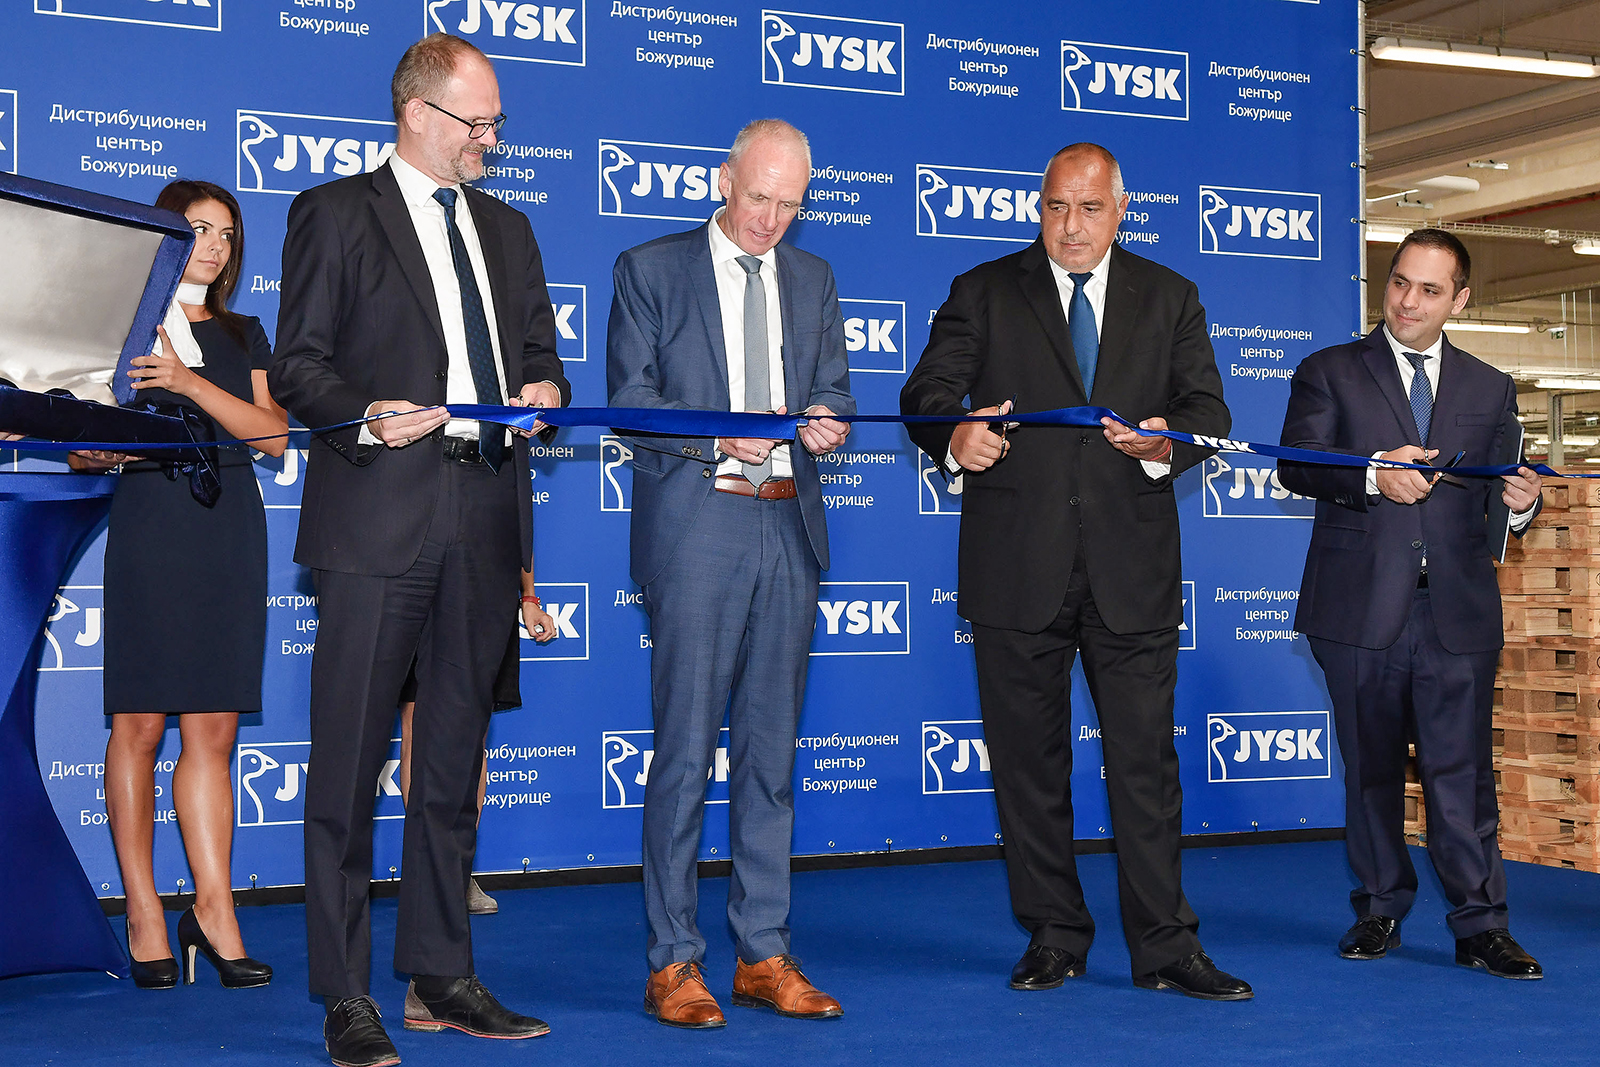 JYSK Sofia inaugurated